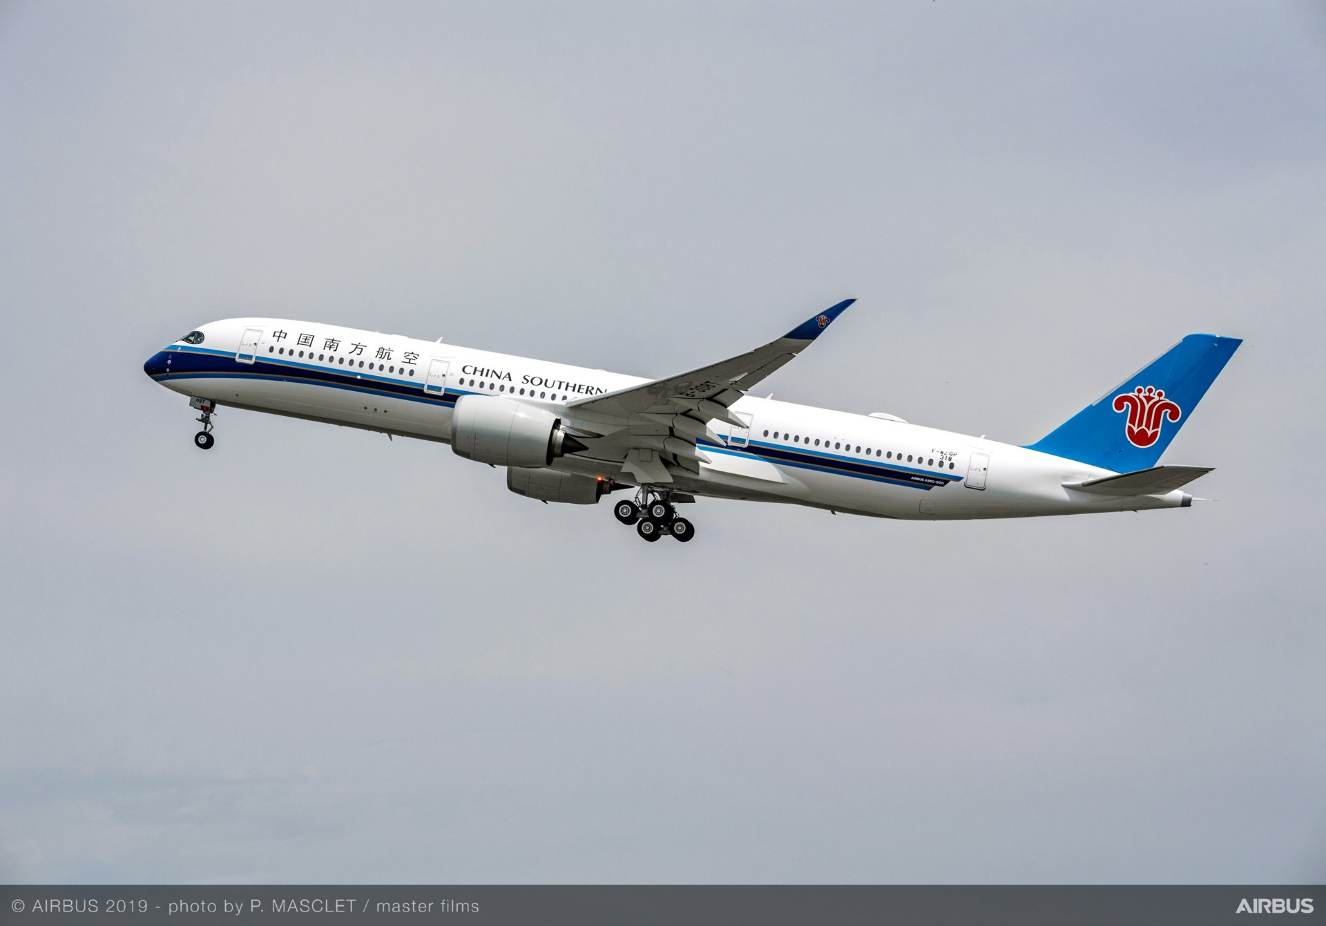 First delivery of an Airbus A350-900 to China Southern Airlines